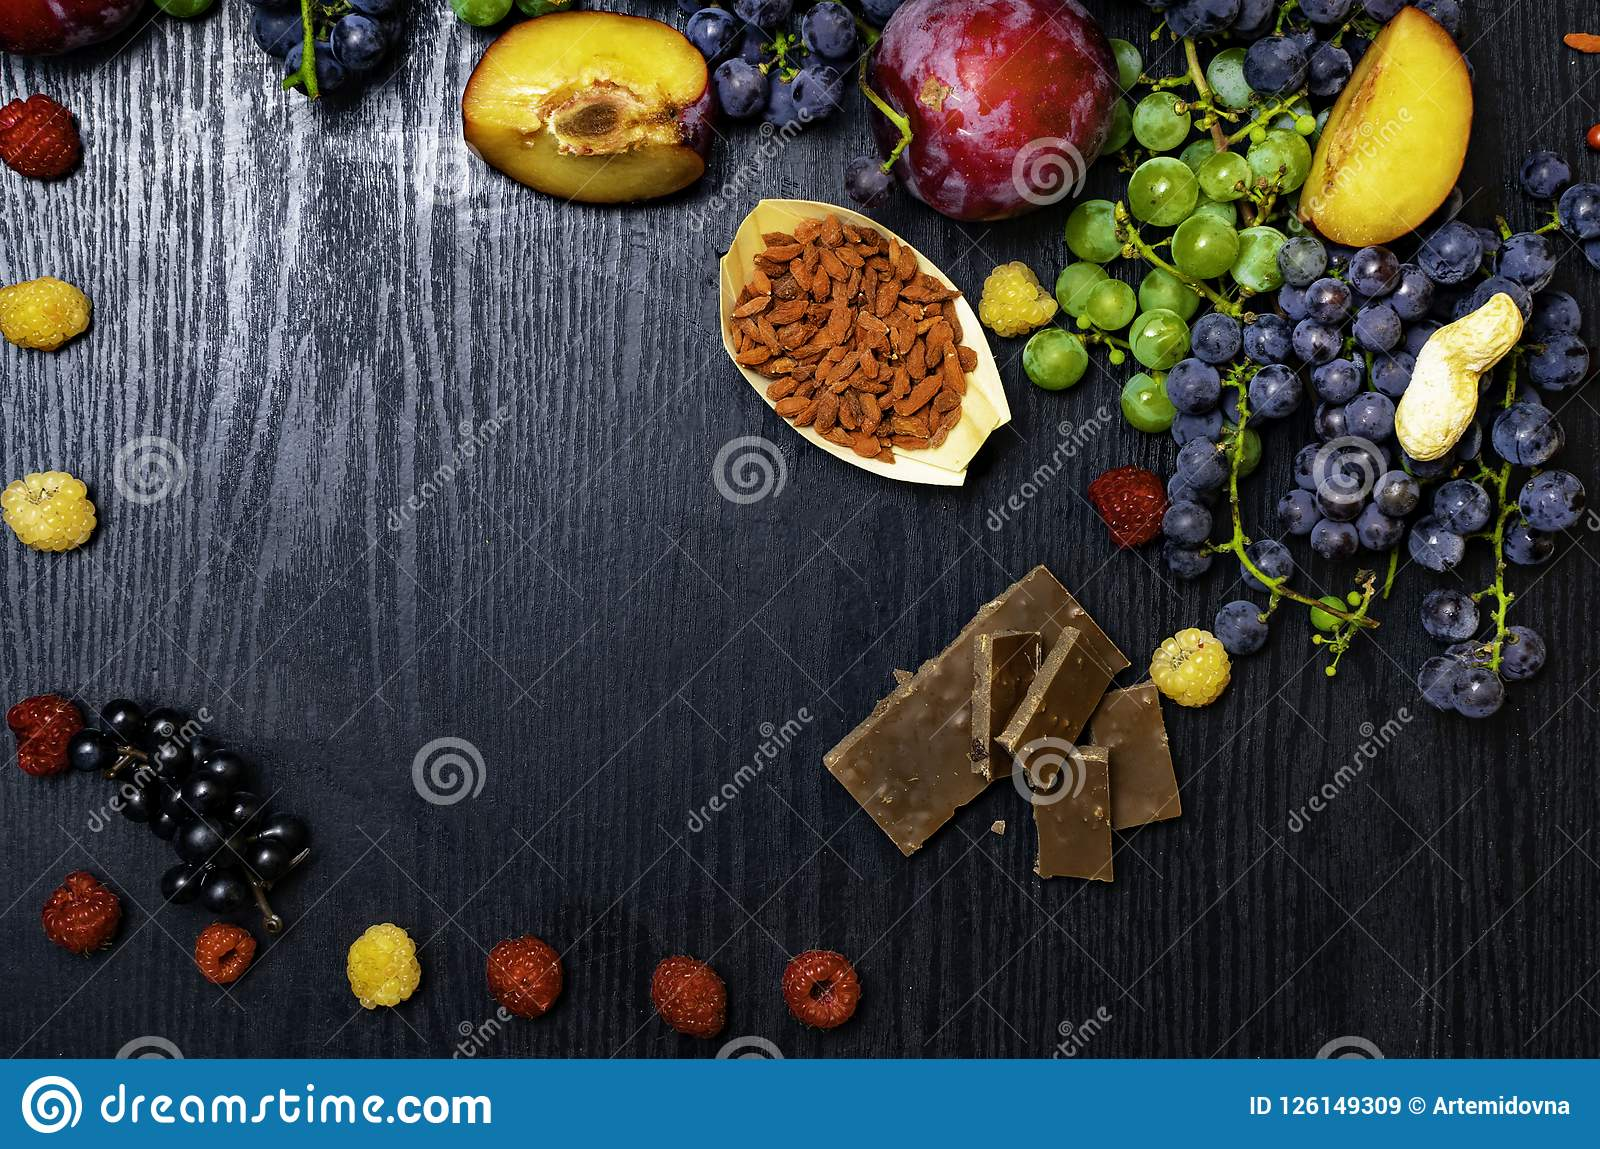 Brain boosting health food background border with fruits, nuts,berry. Foods high in vitamin C, vitamins, minerals, antioxidants an